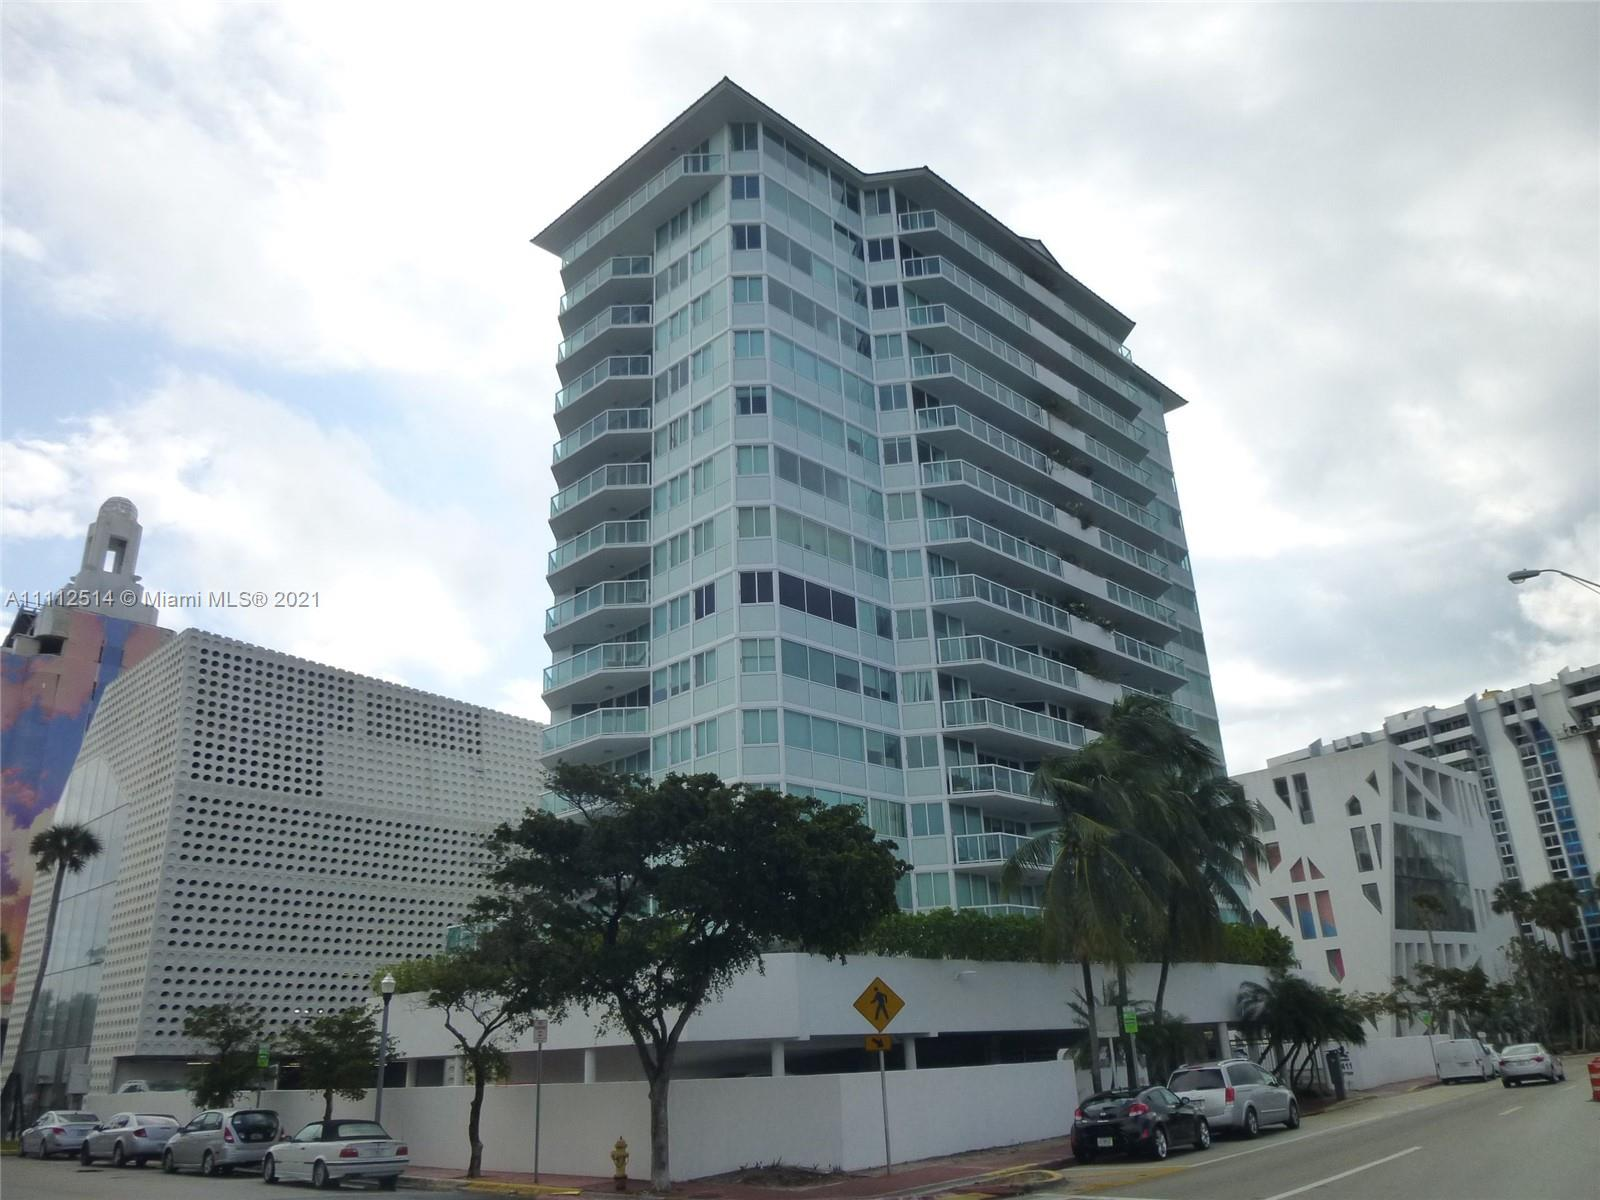 KING DAVID TOWERS CONDO Condo,For Rent,KING DAVID TOWERS CONDO Brickell,realty,broker,condos near me